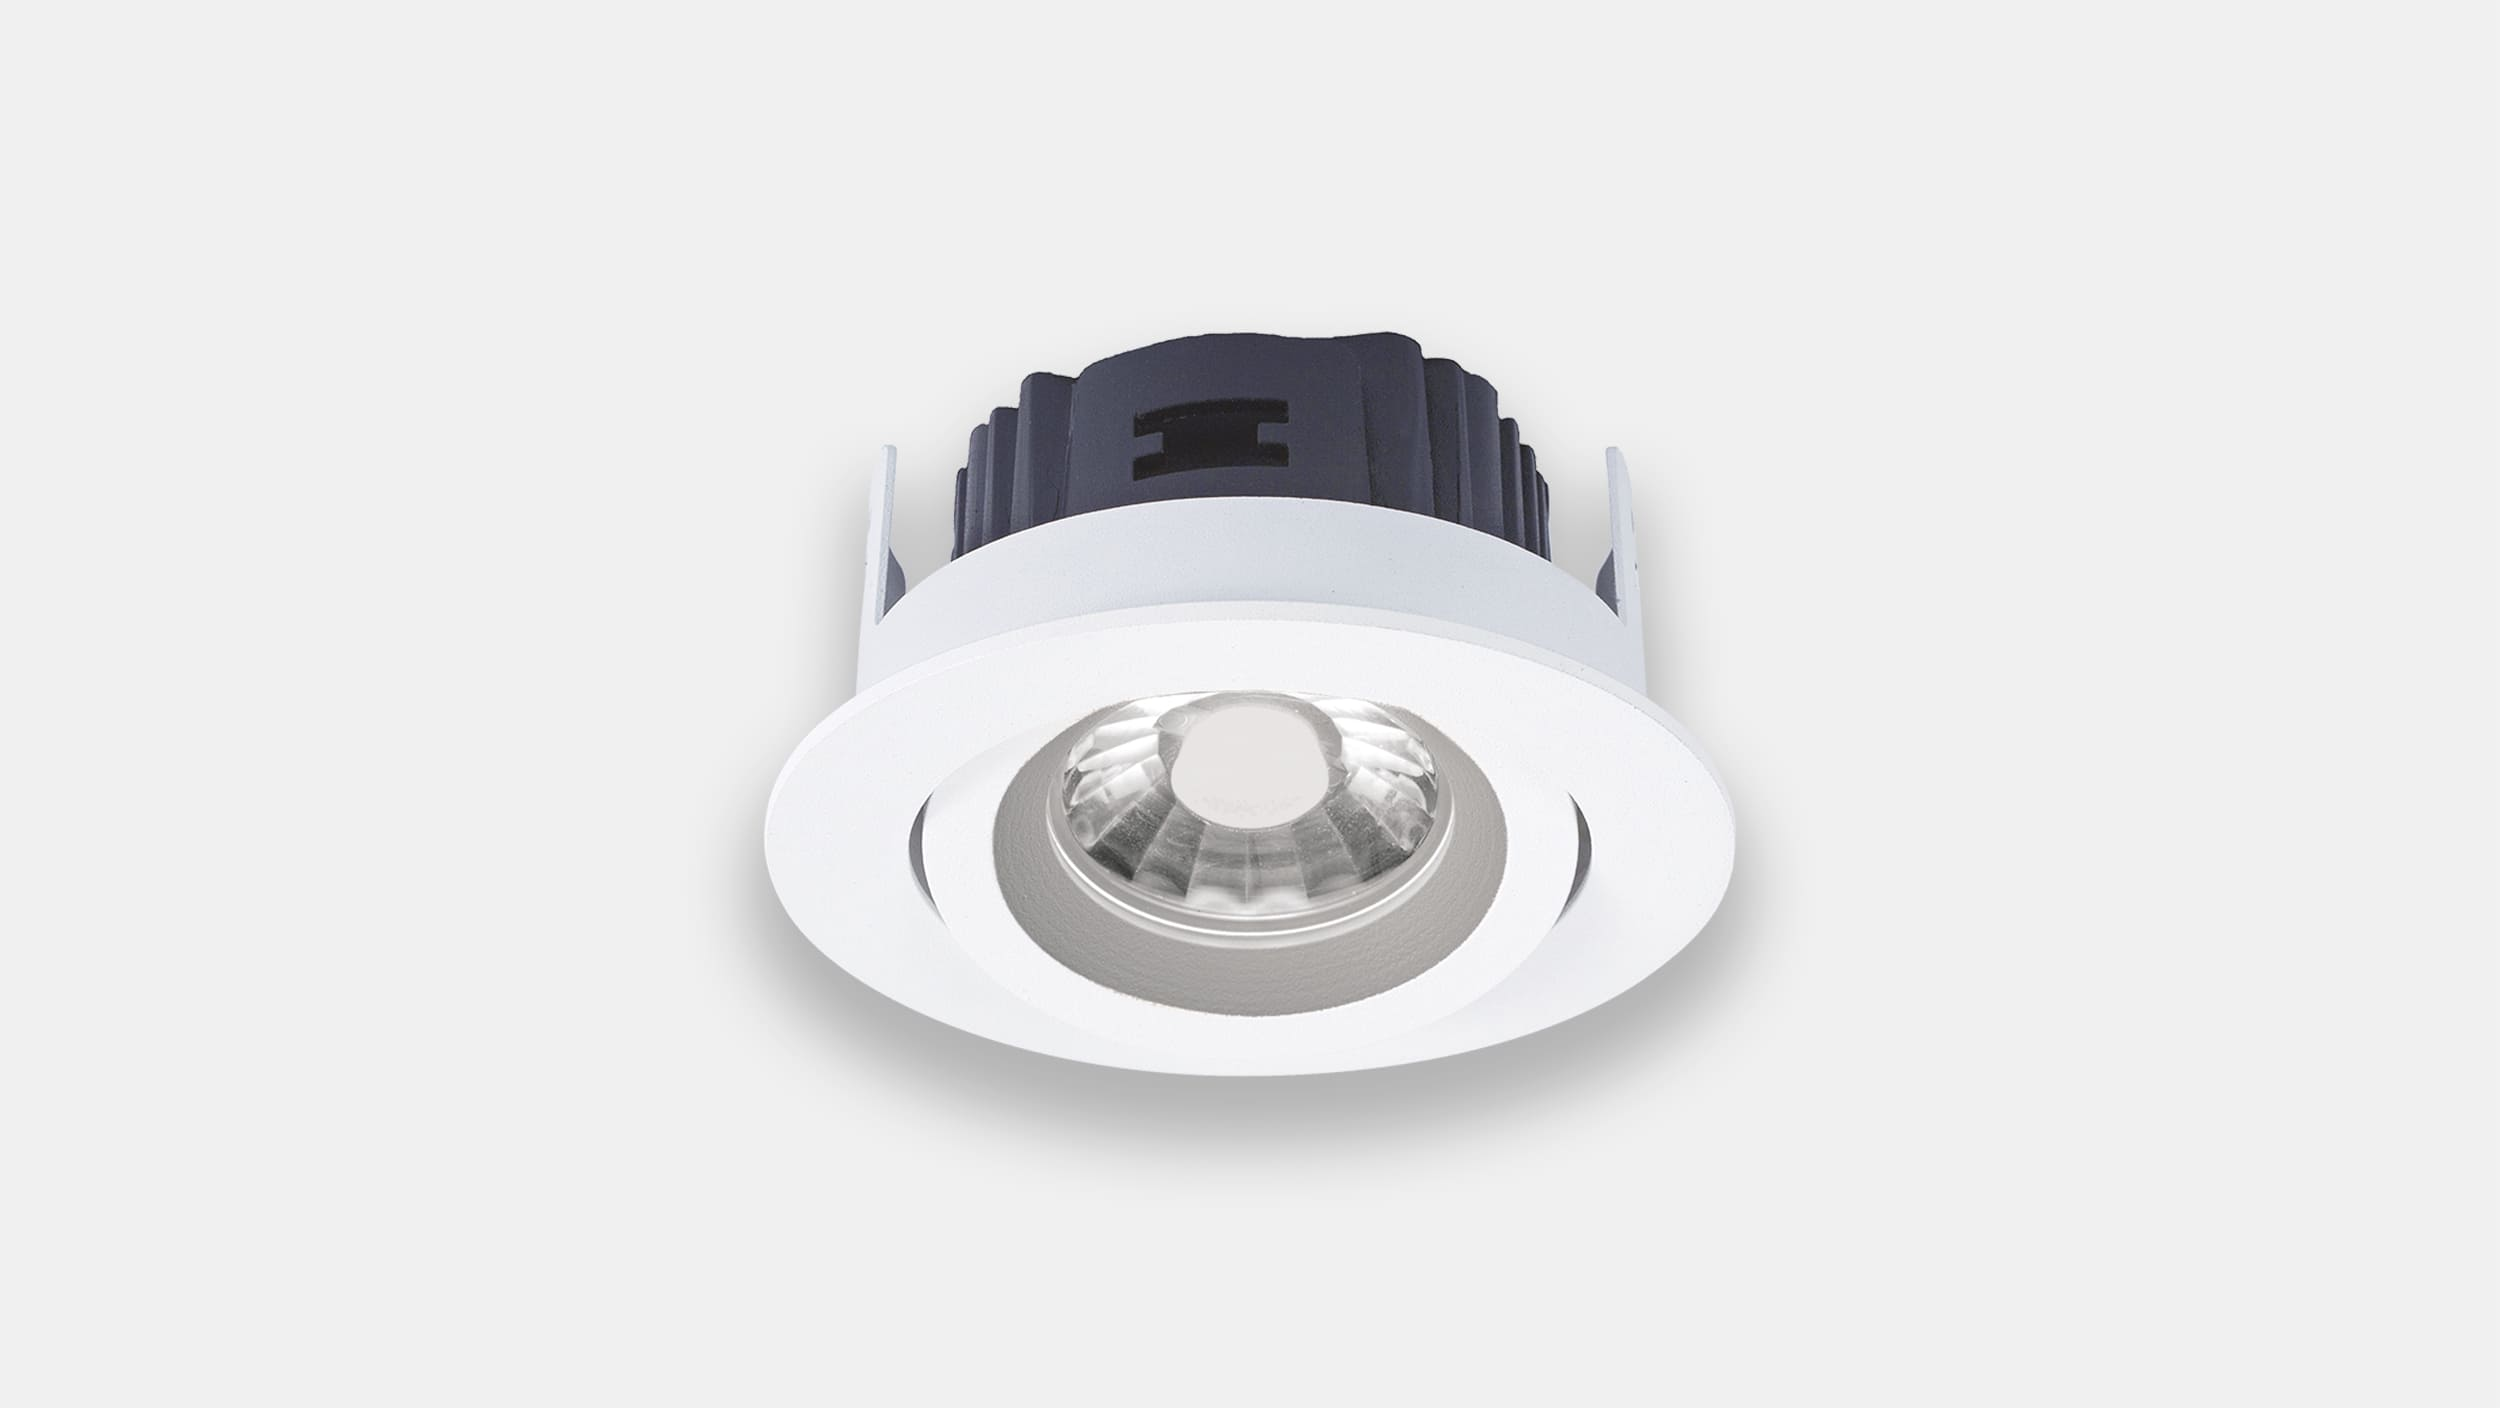 Round adjustable Spot light